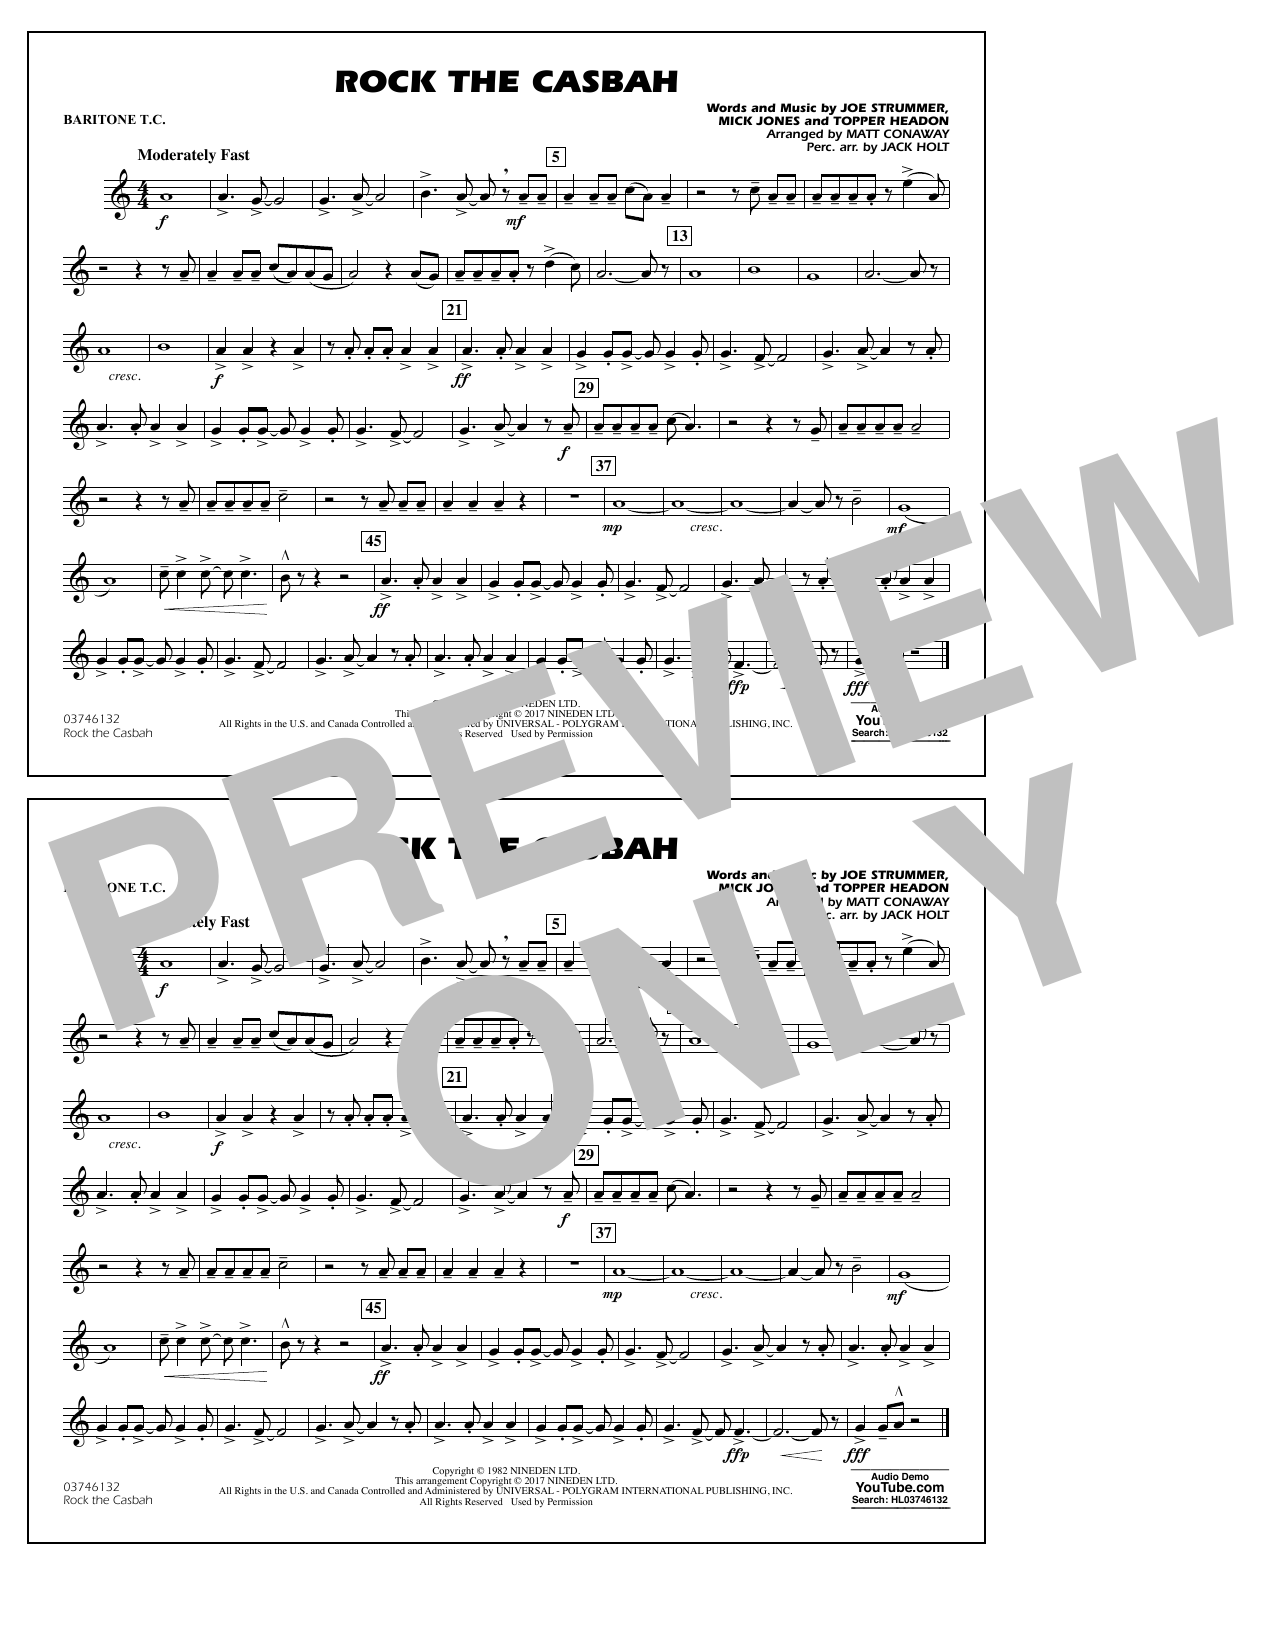 Rock the Casbah - Baritone T.C. Sheet Music